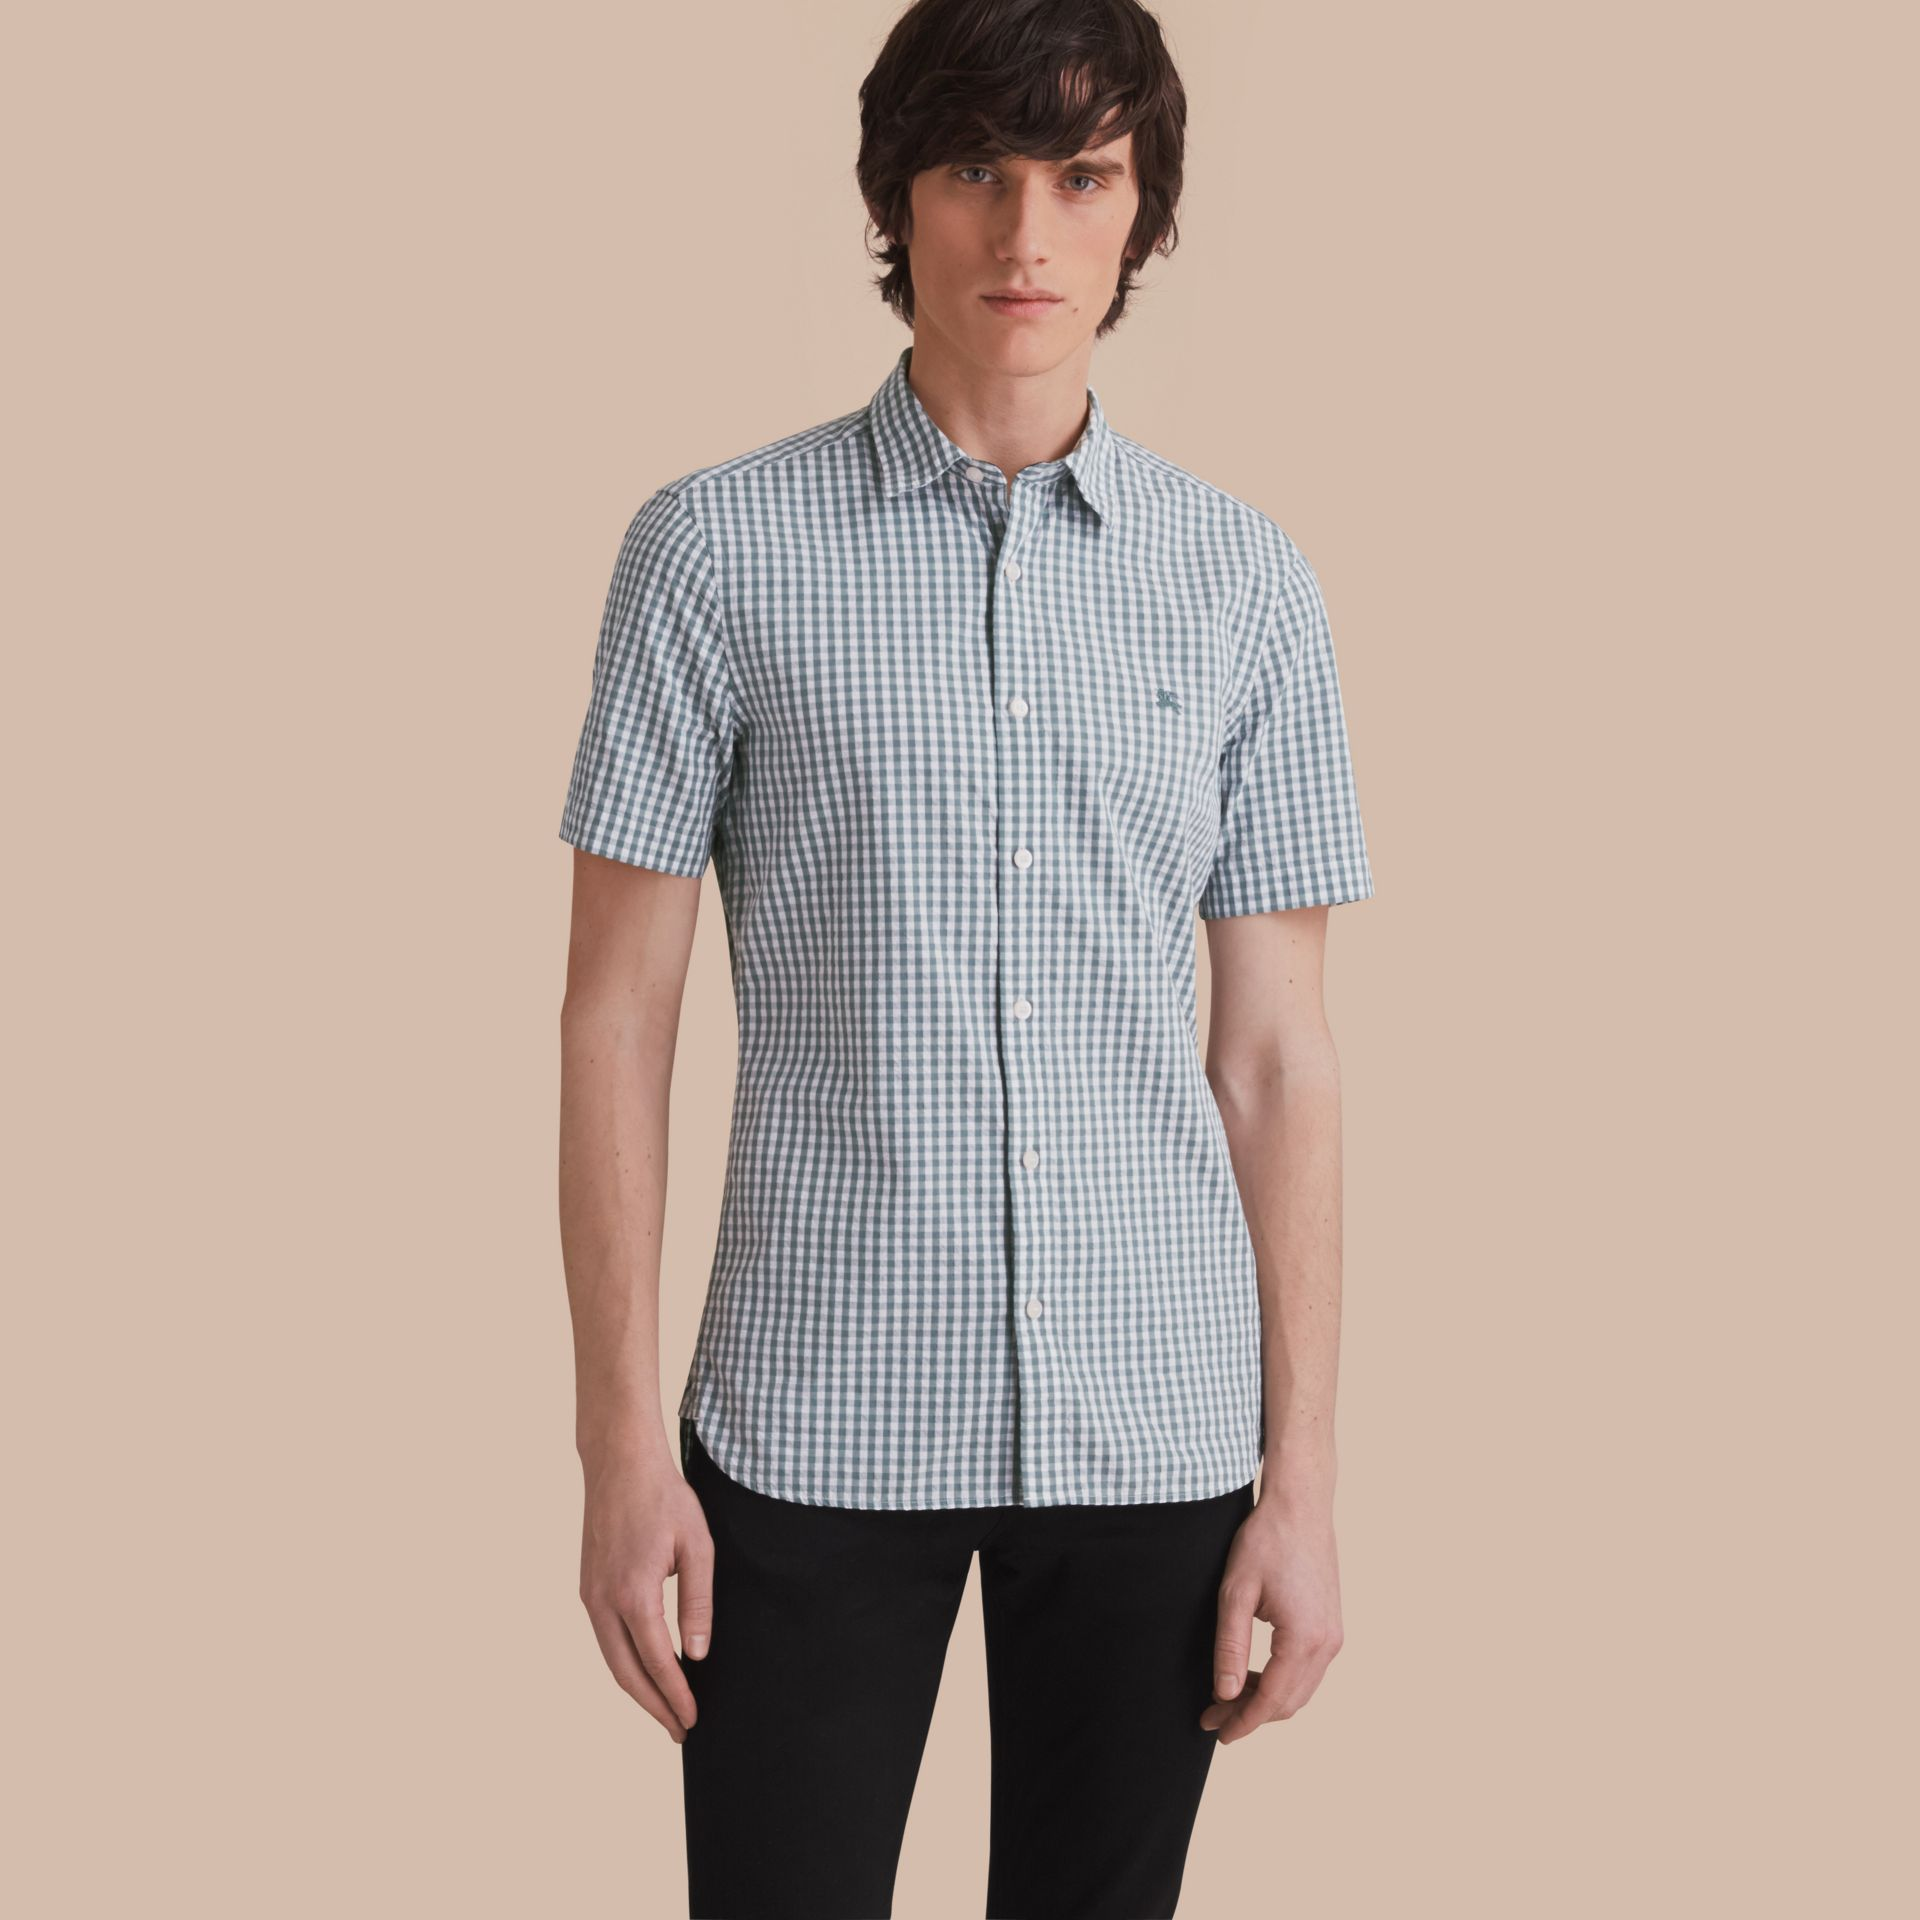 Short-sleeved Gingham Cotton Poplin Shirt in Dusty Teal Blue - Men | Burberry - gallery image 1